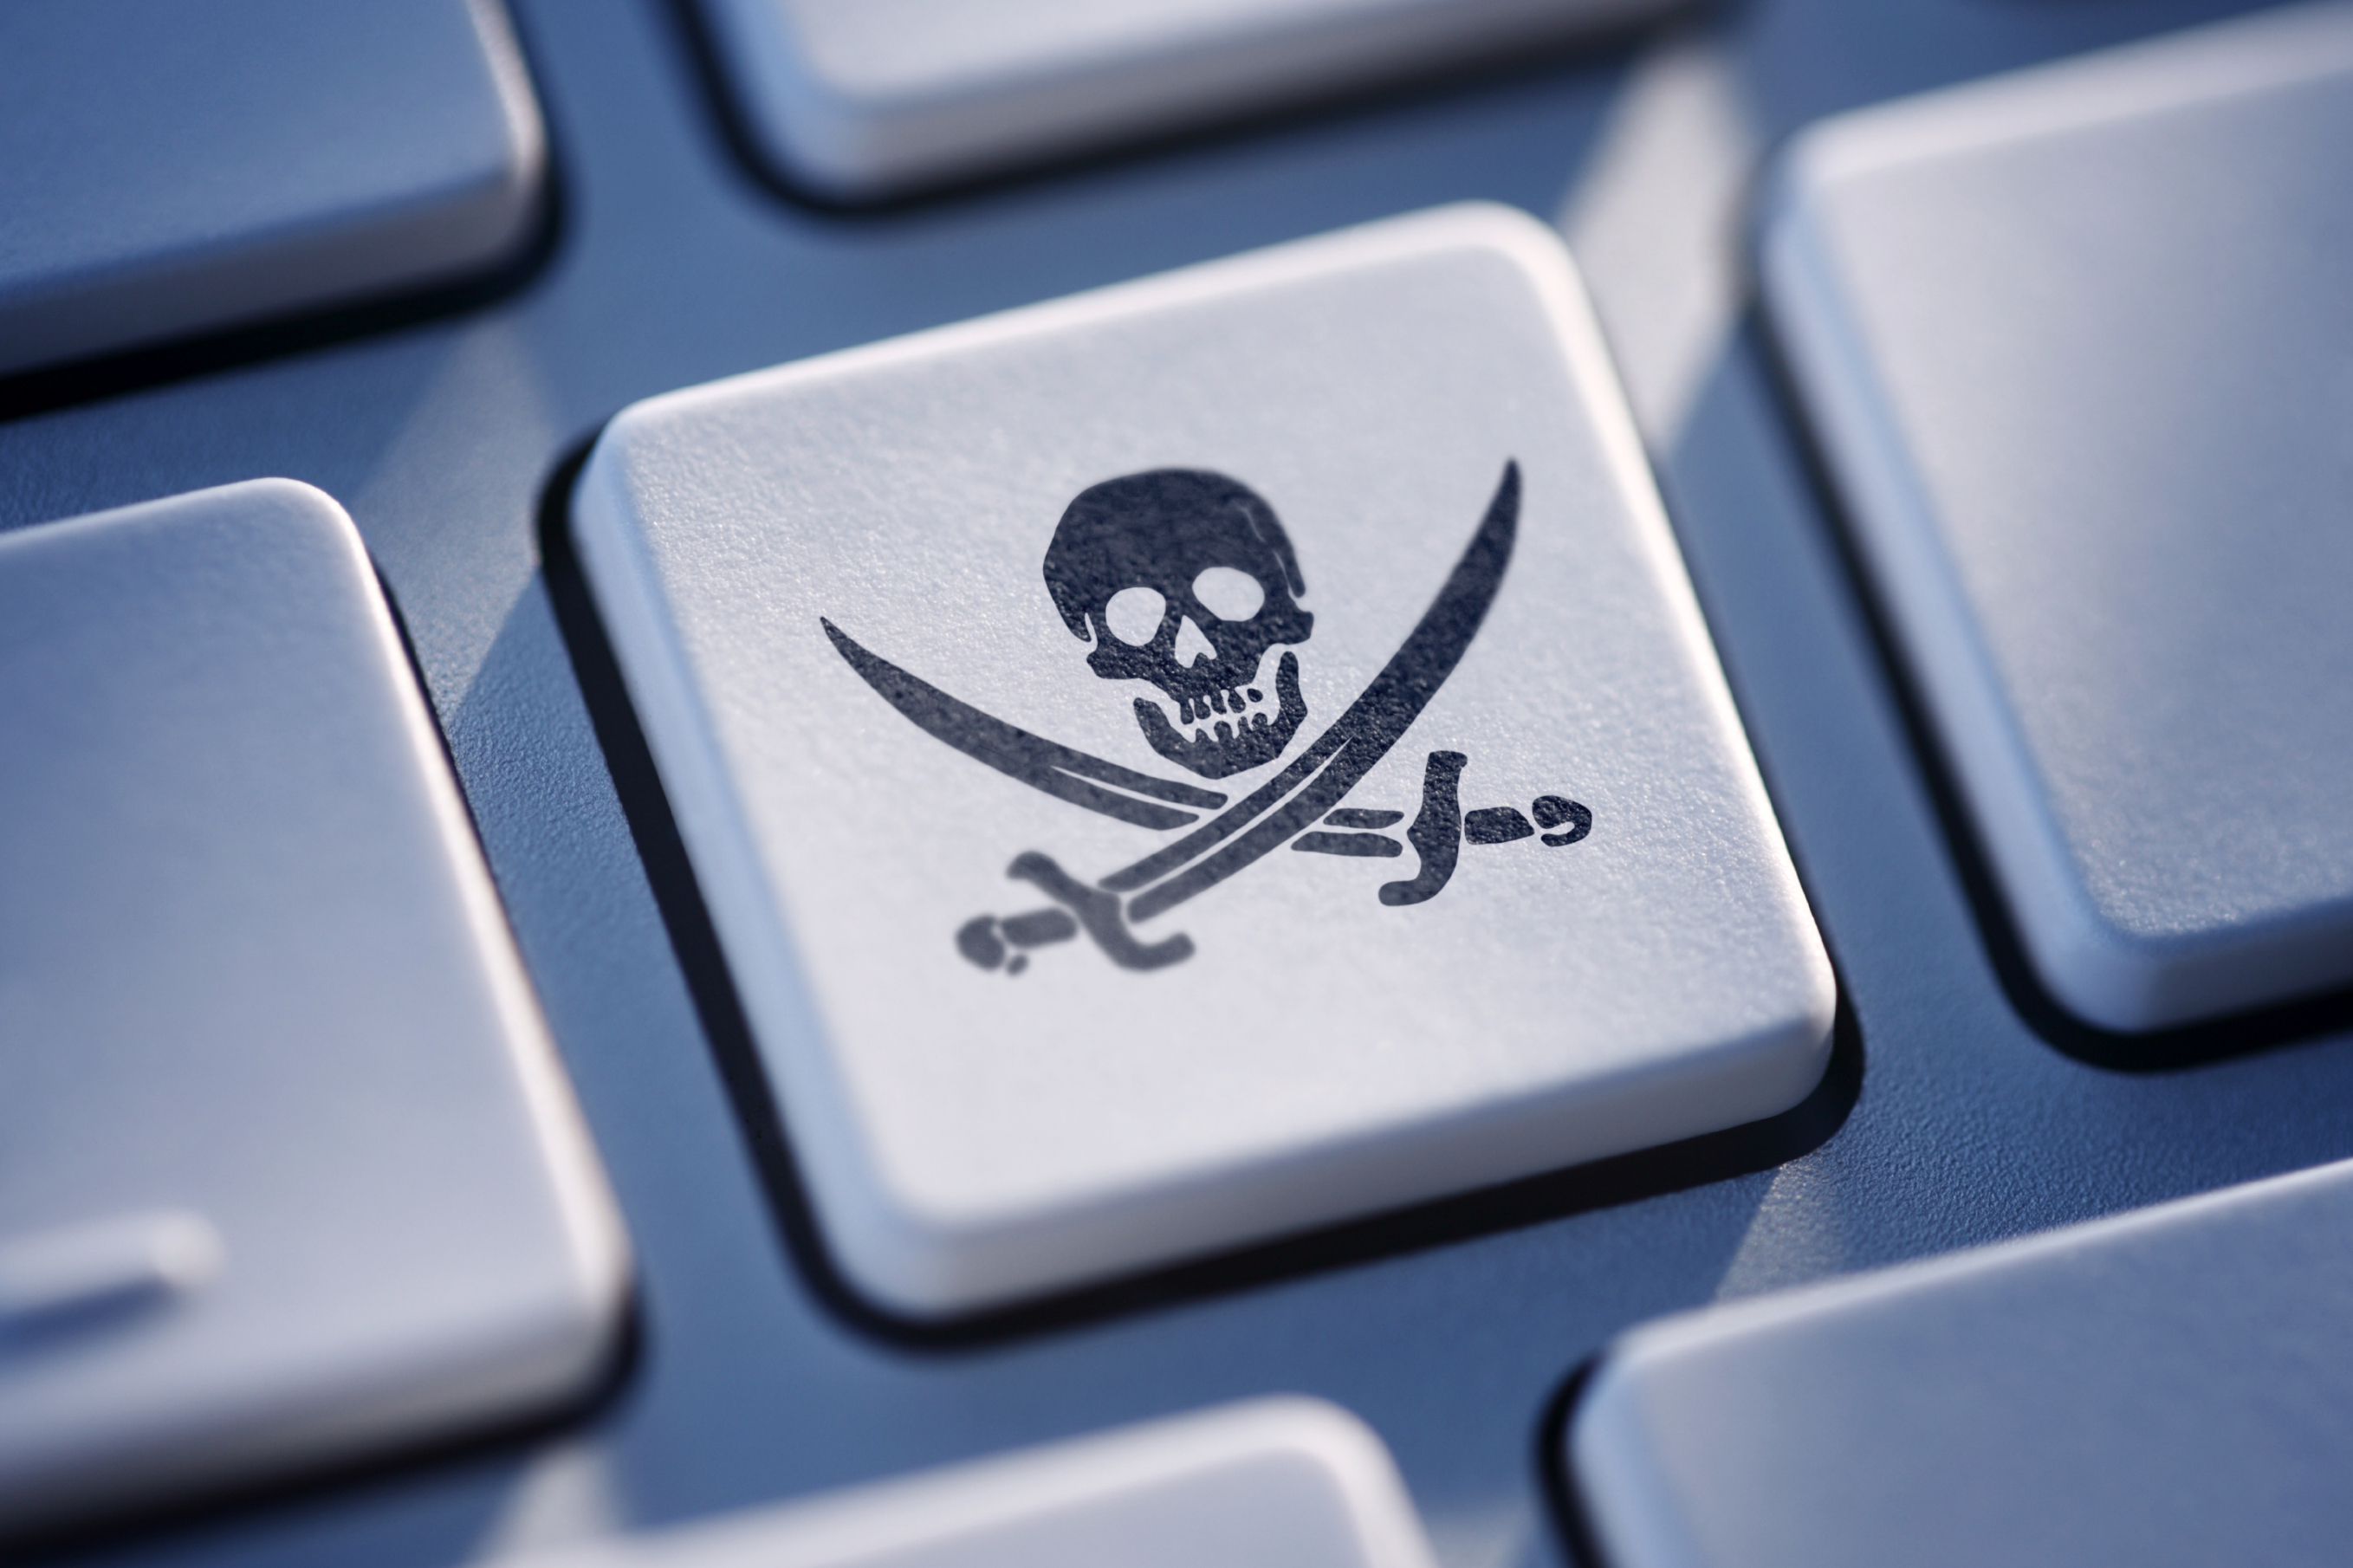 016 Istock 000020208970 Large Pirate Website For Researchs Amazing Research Papers